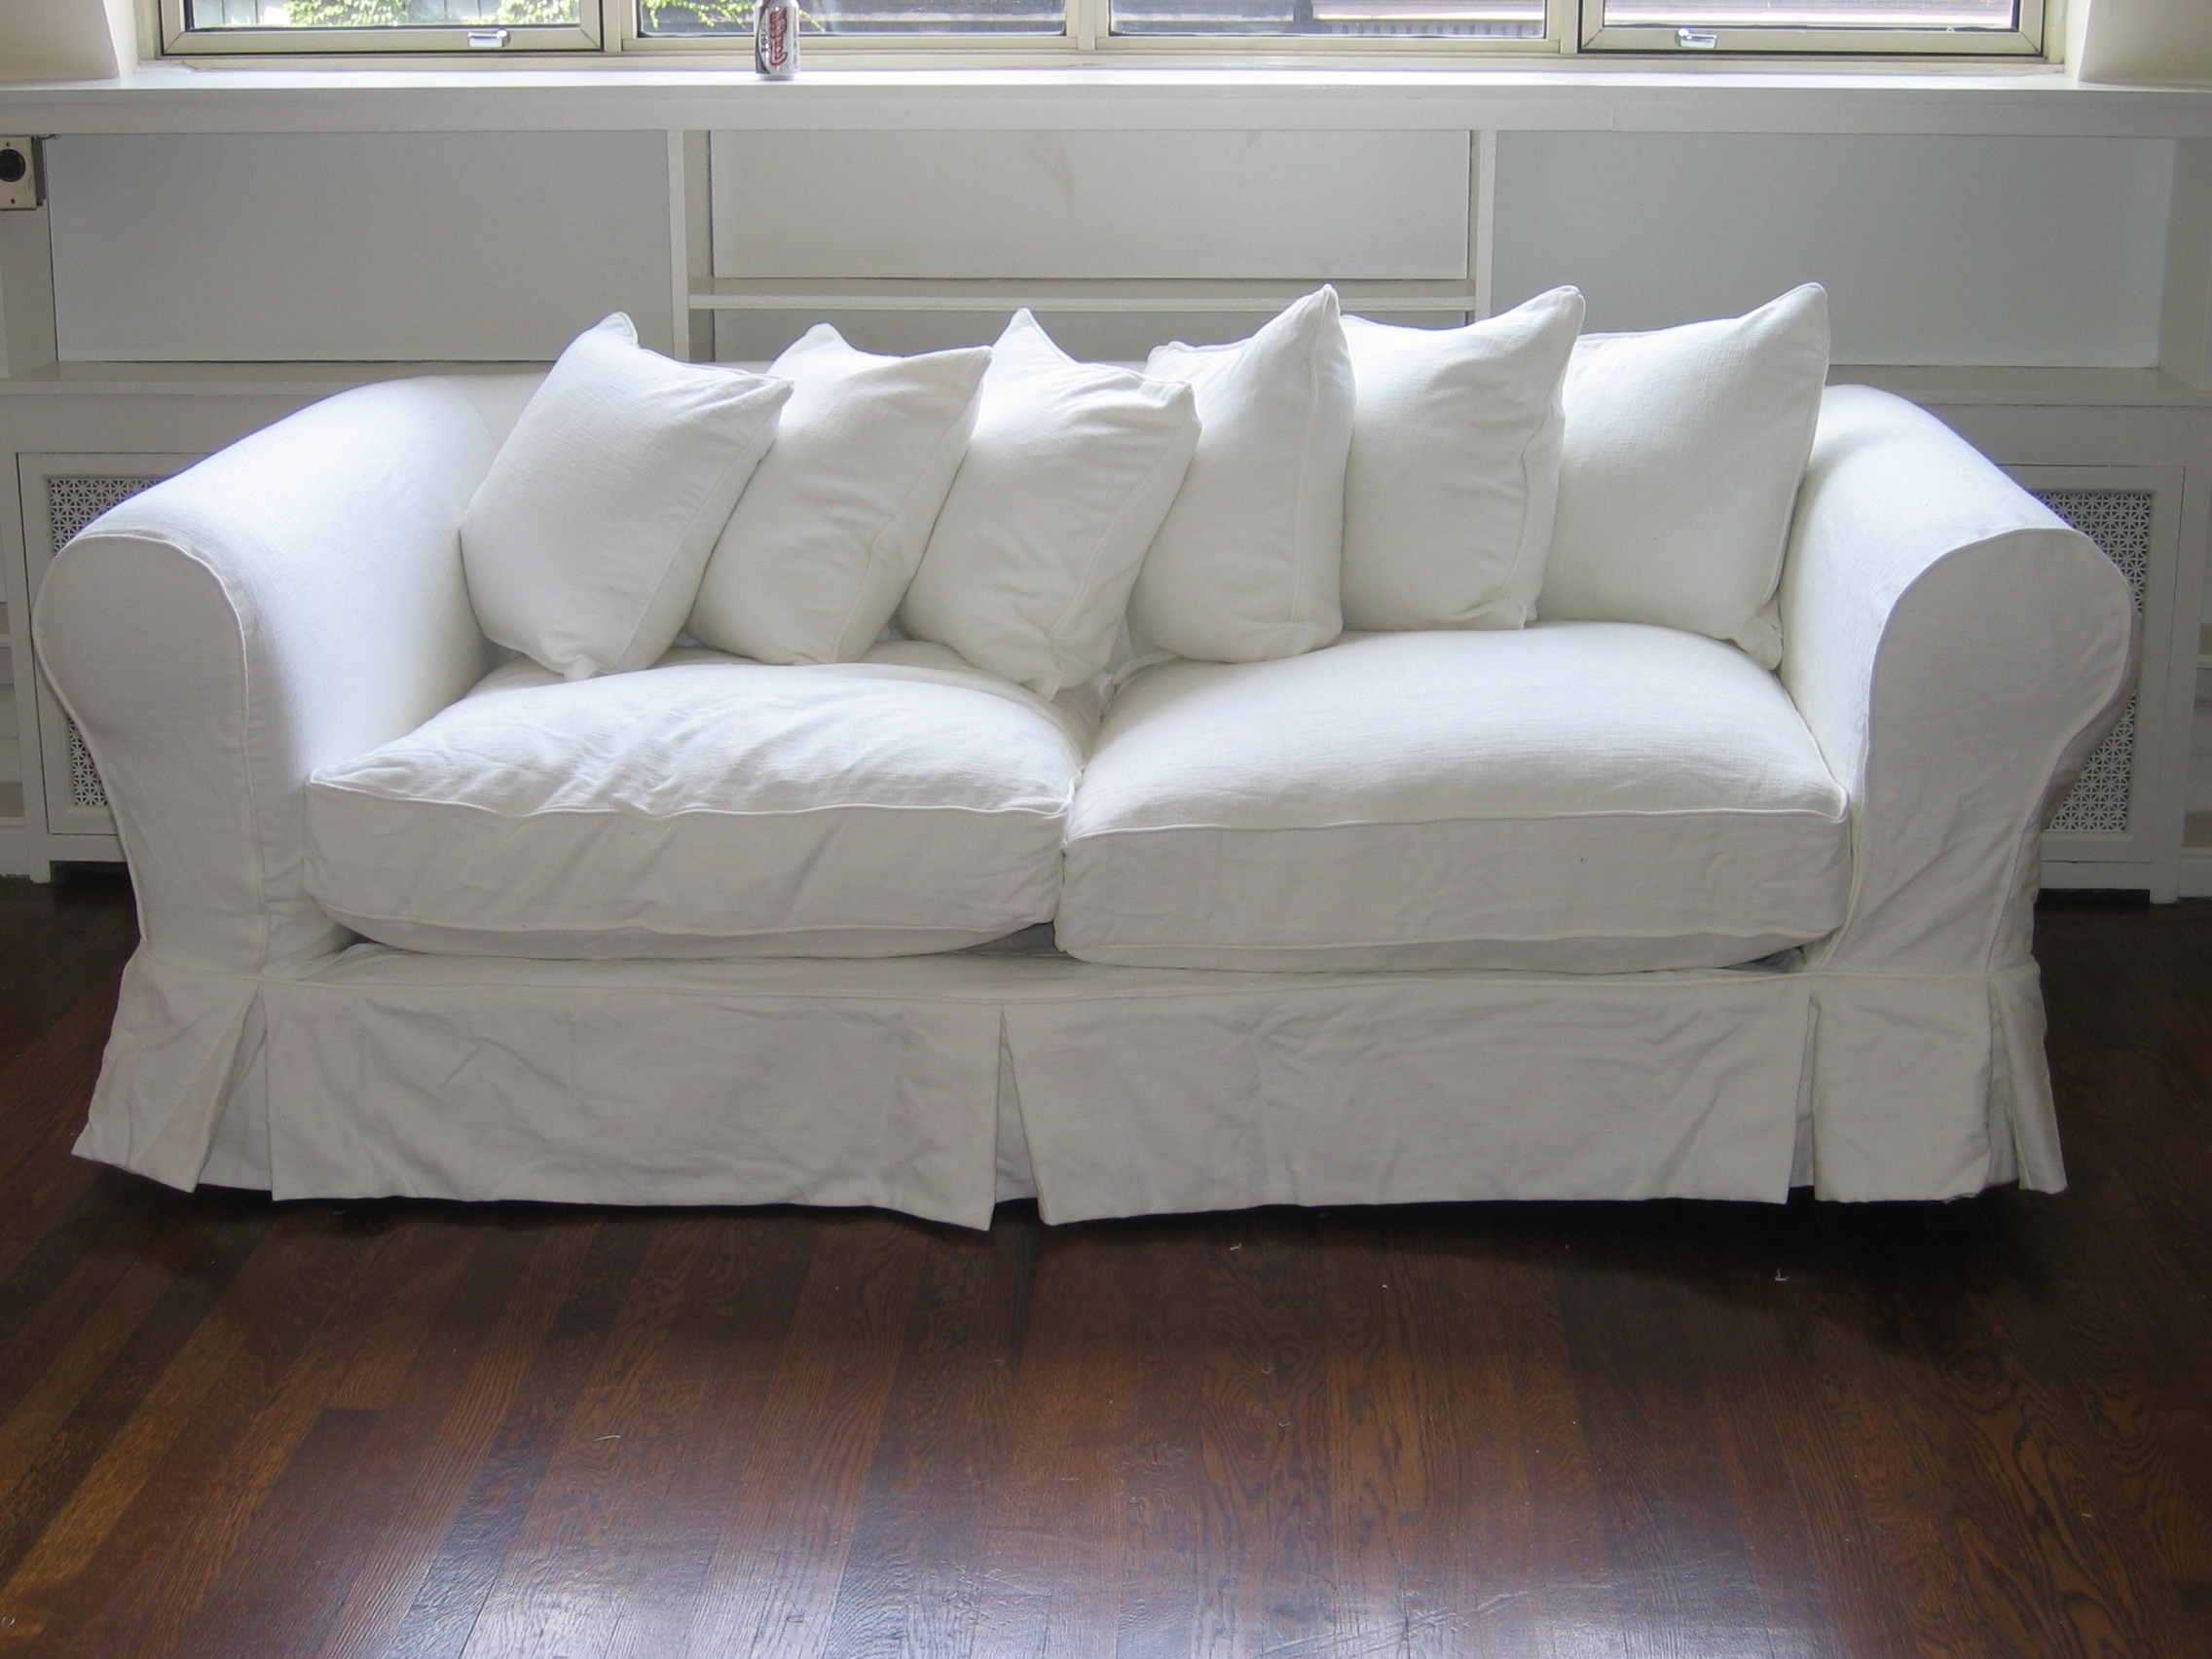 Sofa : Ikea Sofa Reviews Couch For Sale Best Ikea Couch Reddit With Regard To Famous Overstuffed Sofas And Chairs (View 5 of 15)